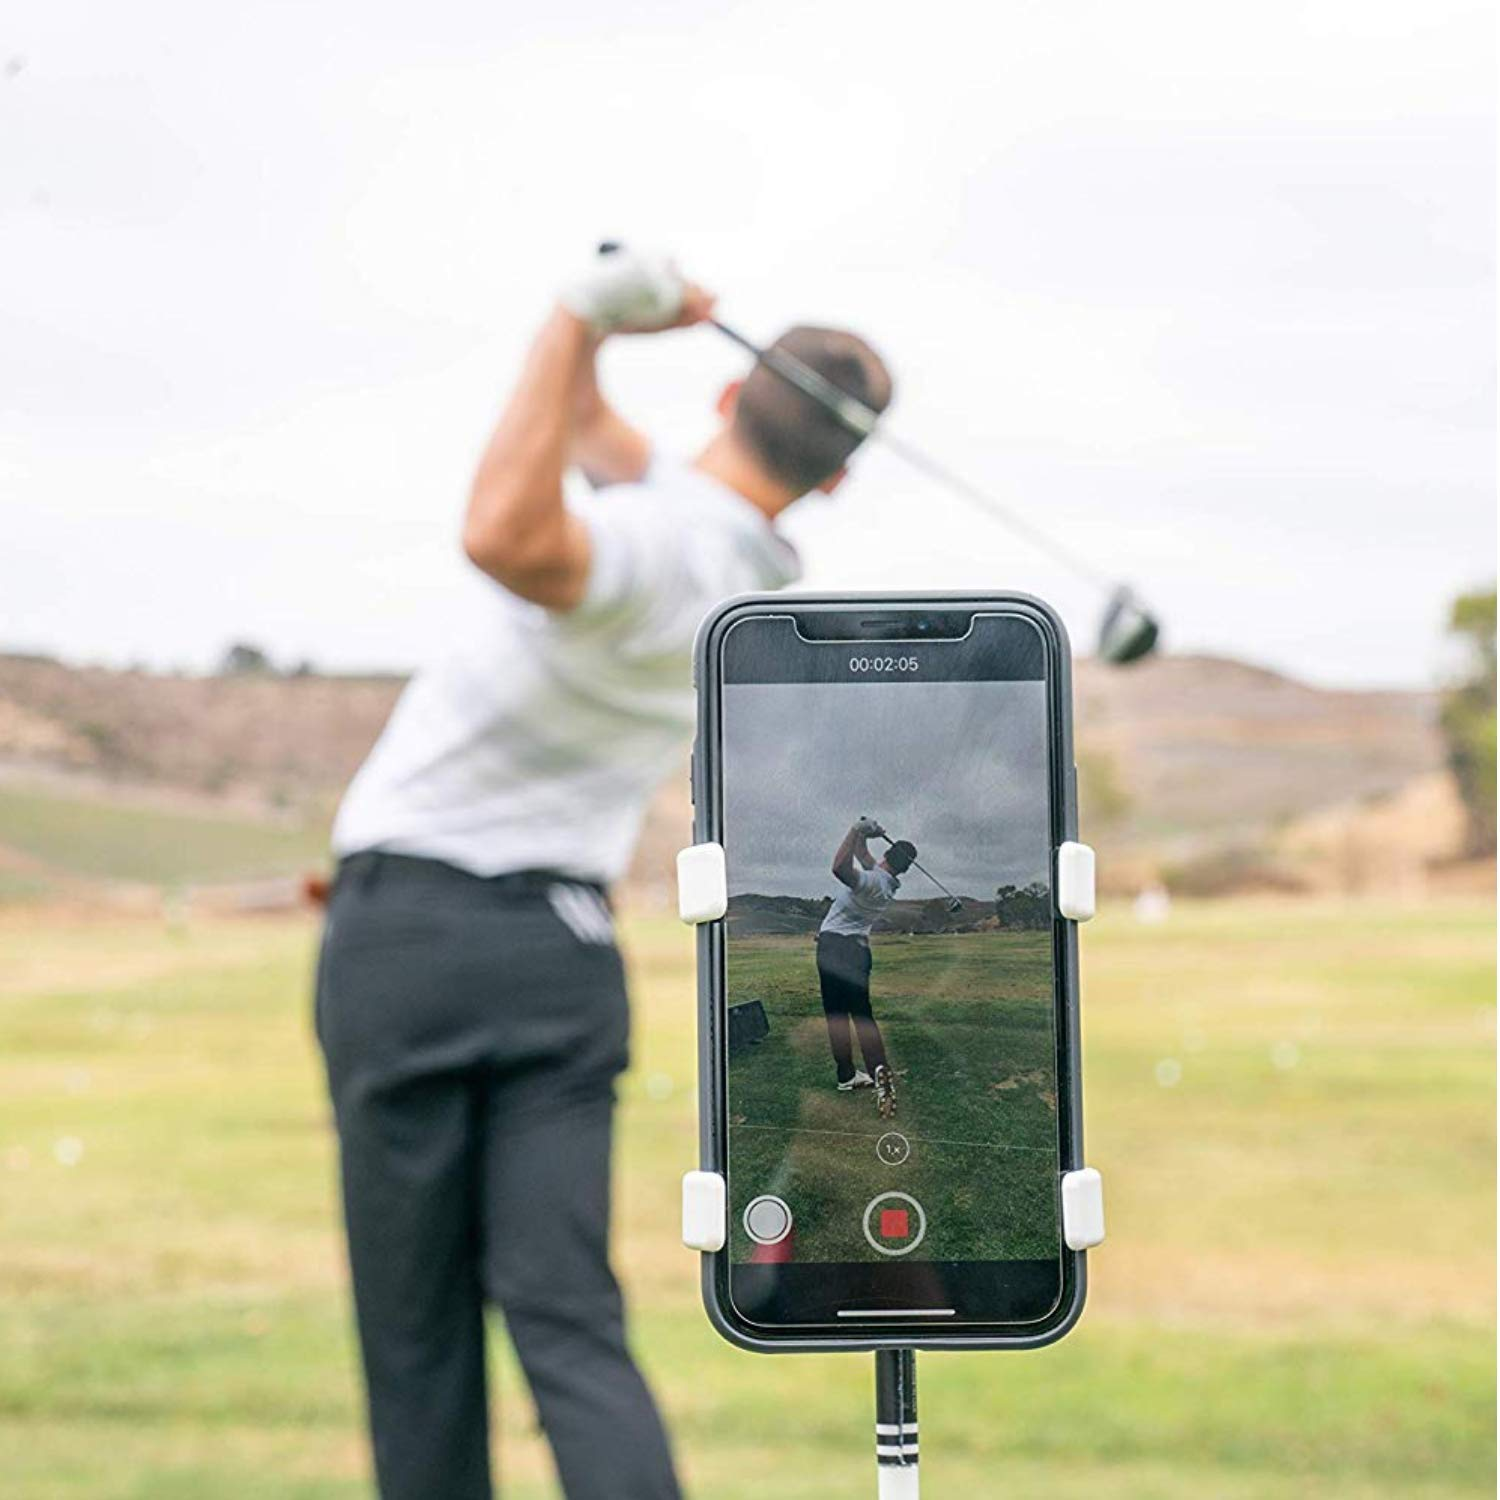 SelfieGolf Record Golf Swing - Cell Phone Clip Holder and Training Aid - Golf Accessories | Winner of The PGA Best Product | Works with Any Smart Phone, Quick Set Up (Green/White) by Selfie Golf